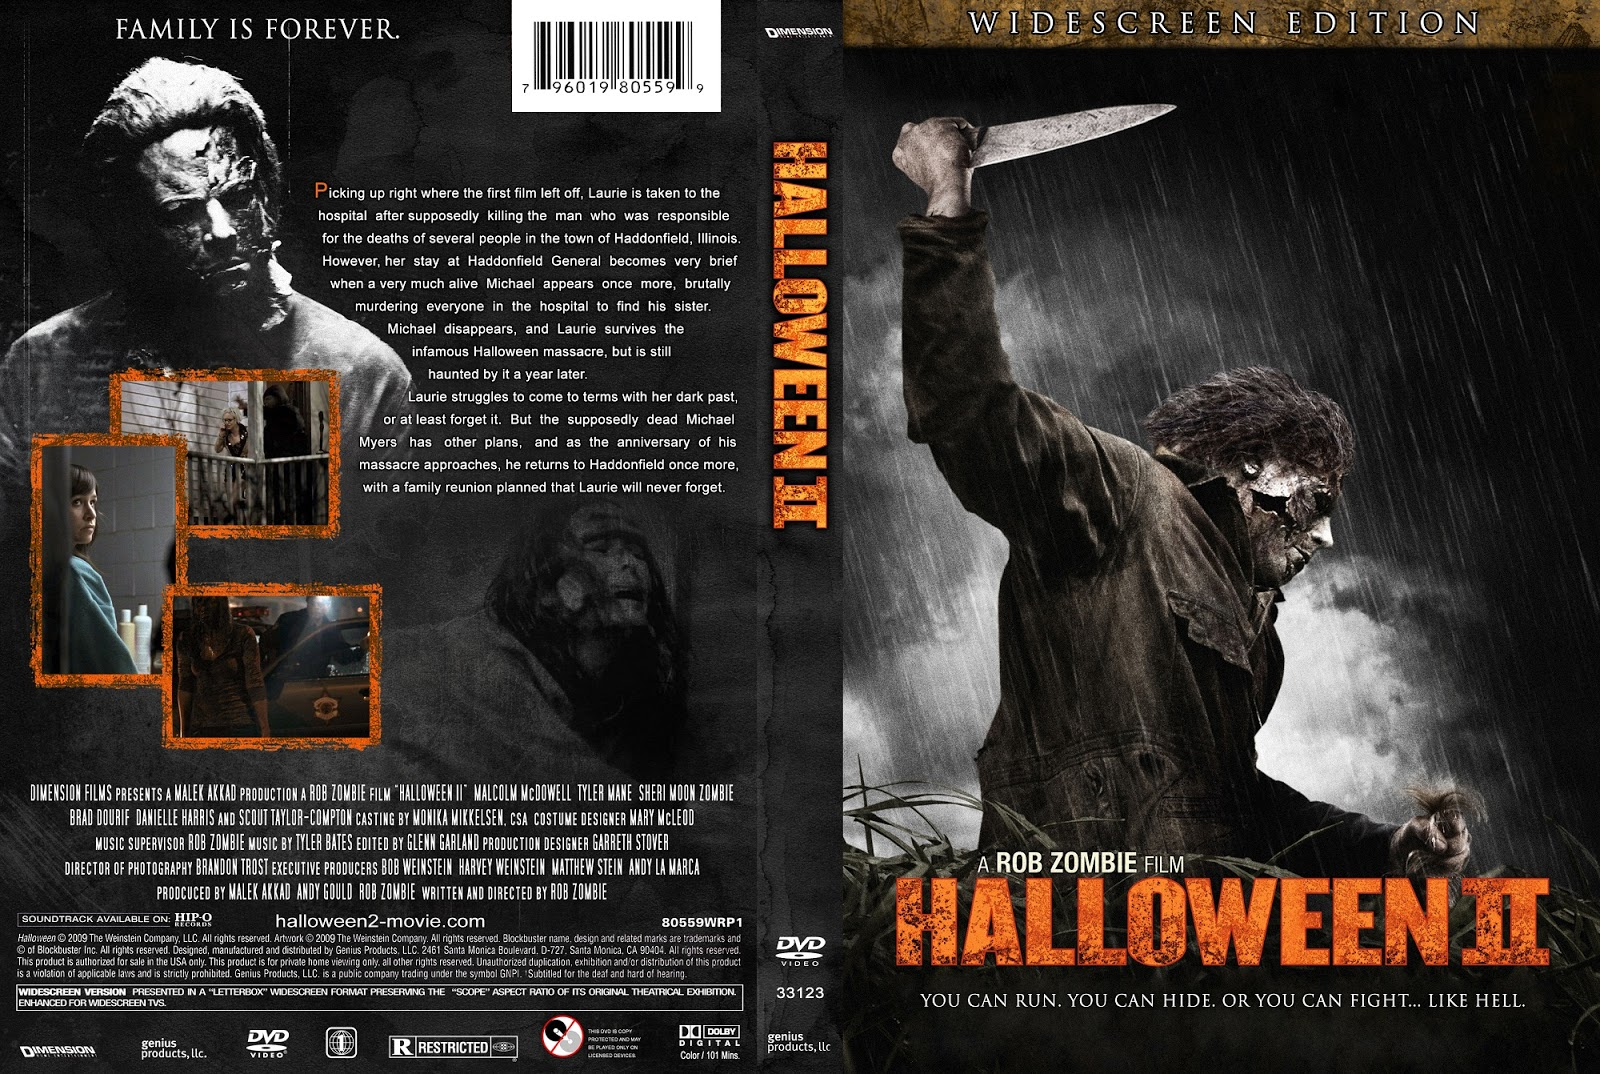 The Horrors of Halloween: HALLOWEEN 2 (2009) VHS, DVD and Blu-ray ...